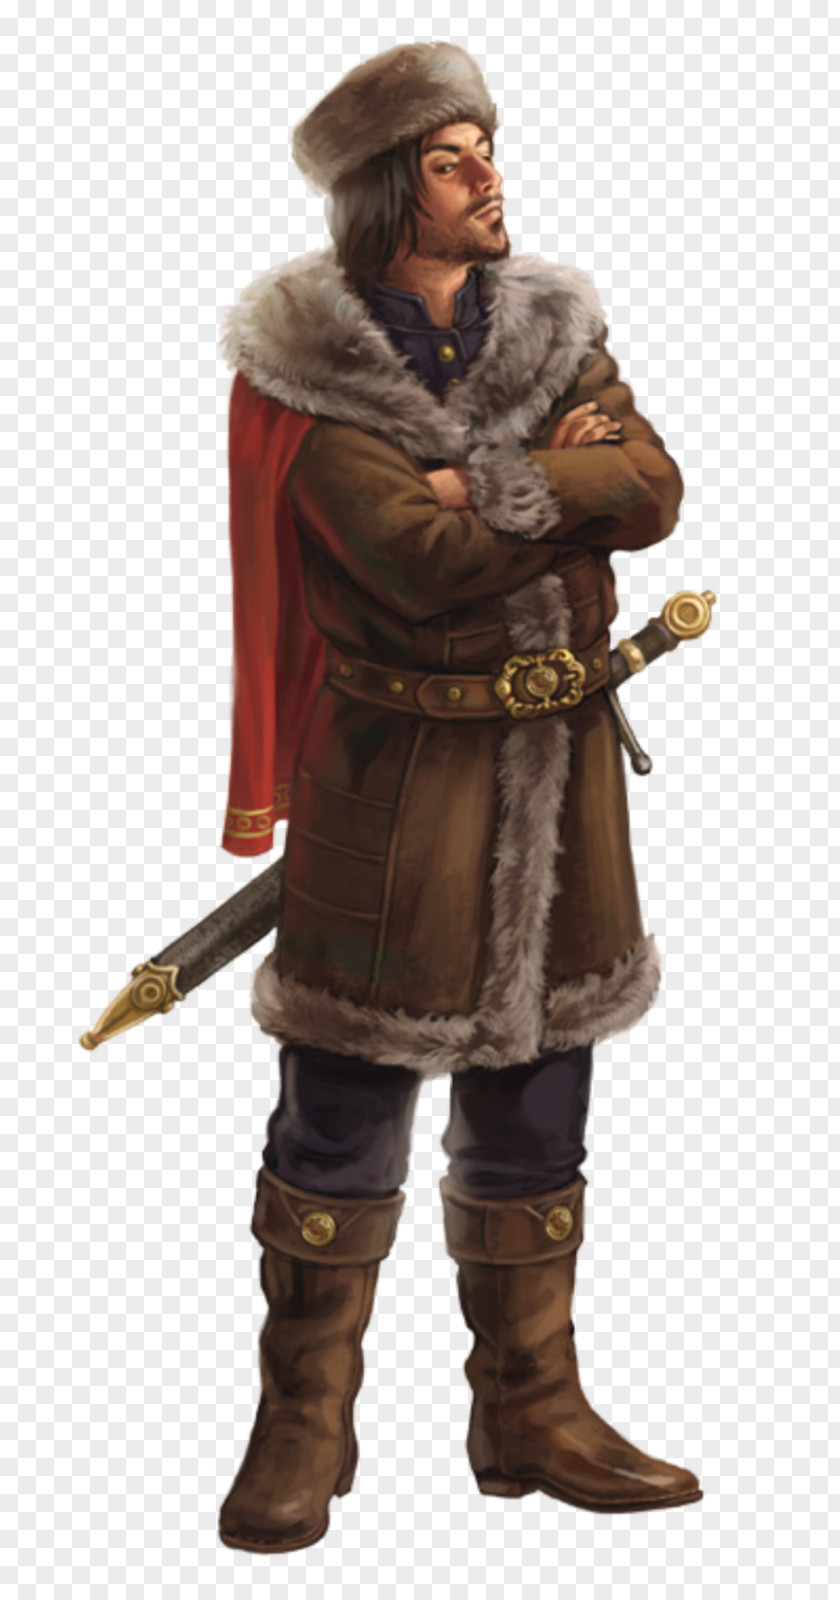 Dungeons & Dragons Fantasy Character Pathfinder Roleplaying Game Role-playing PNG